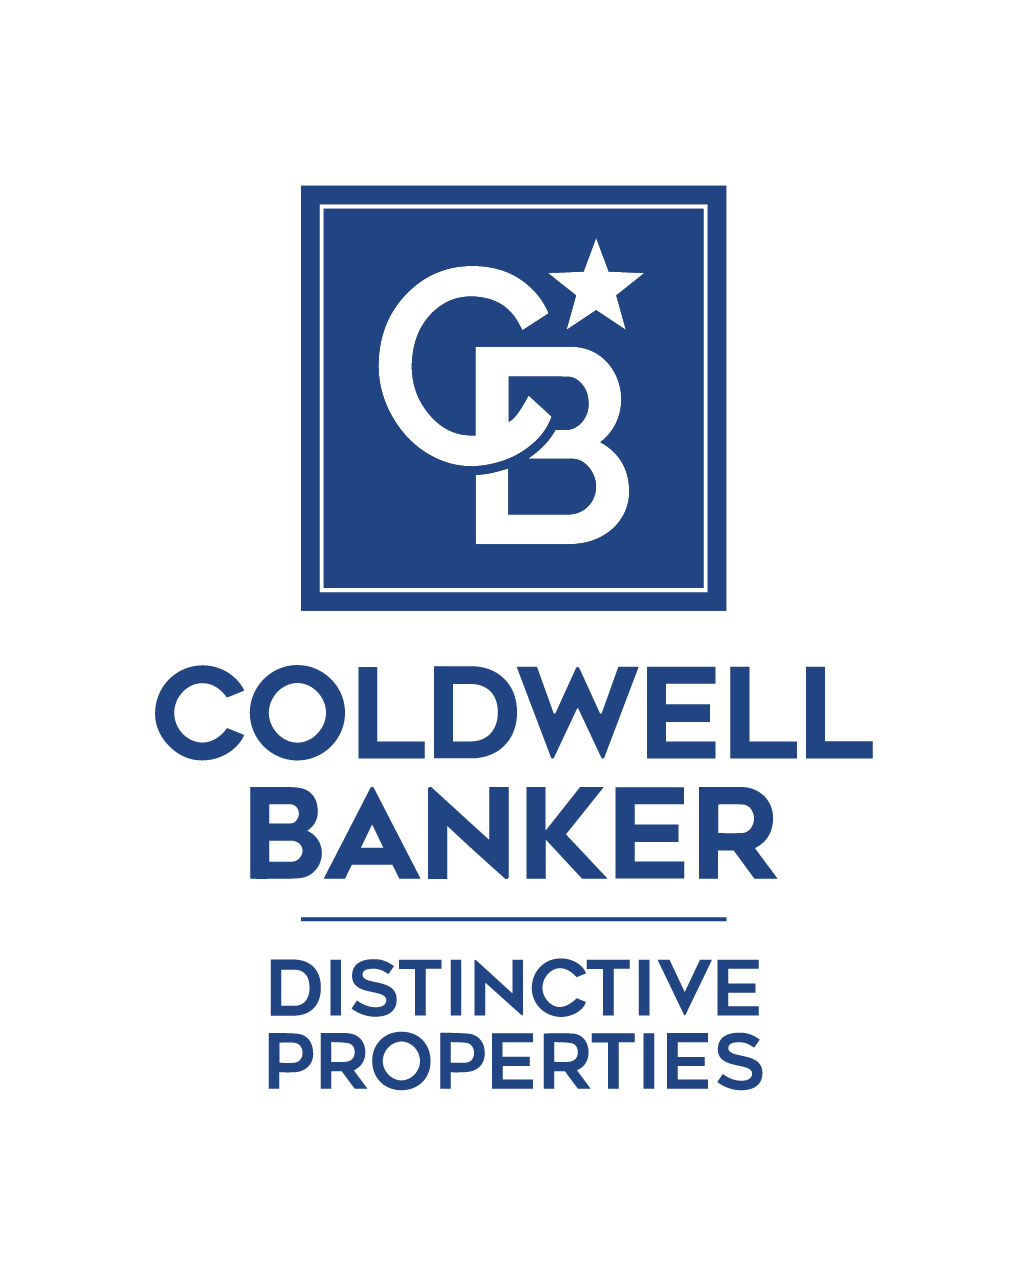 Amelia Cannedy - Coldwell Banker Distinctive Properties